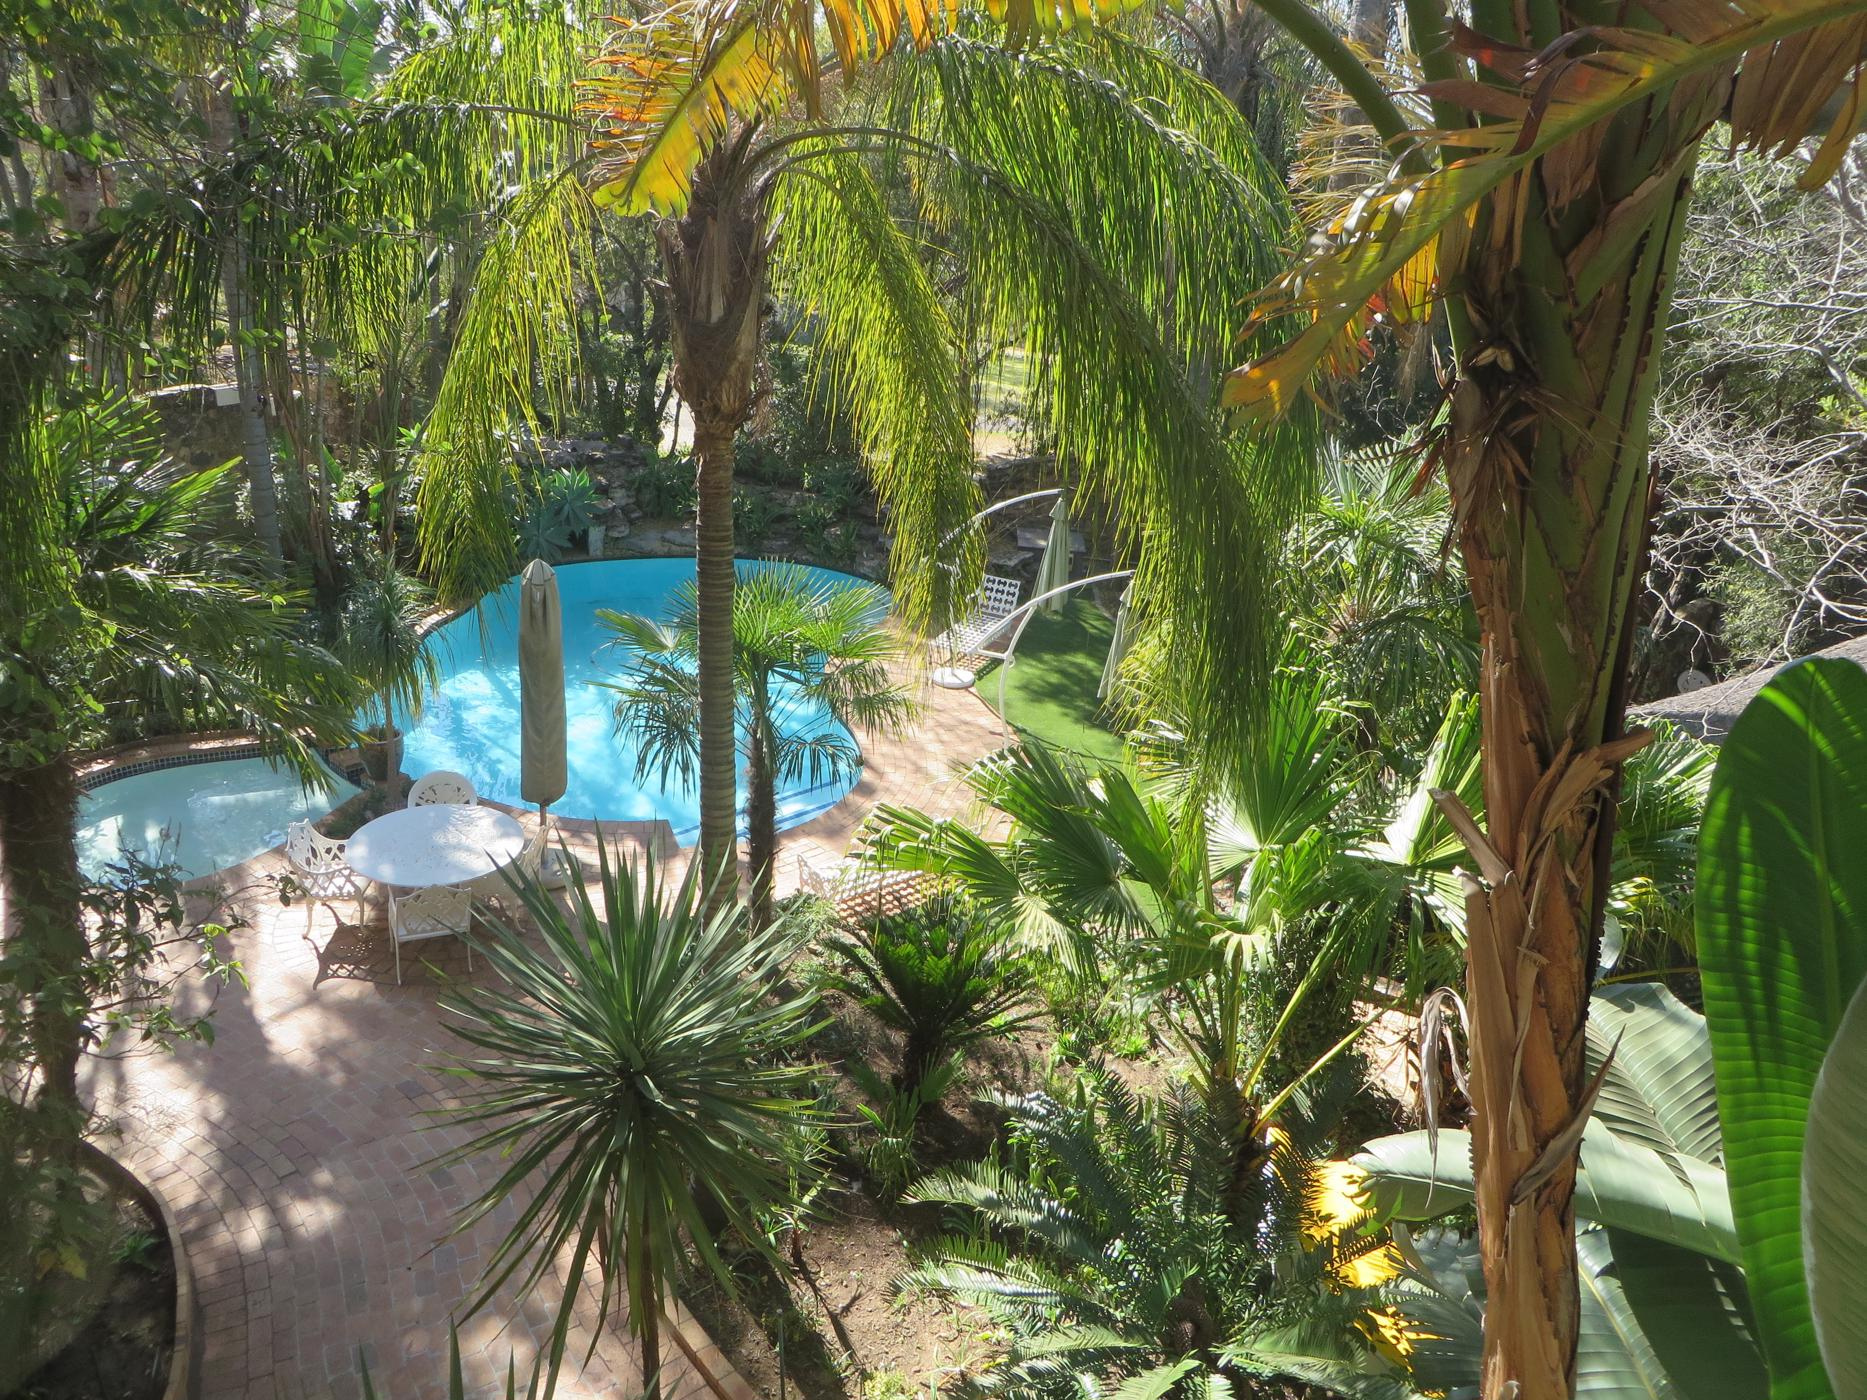 9 hectare game farm for sale in Kalkheuwel